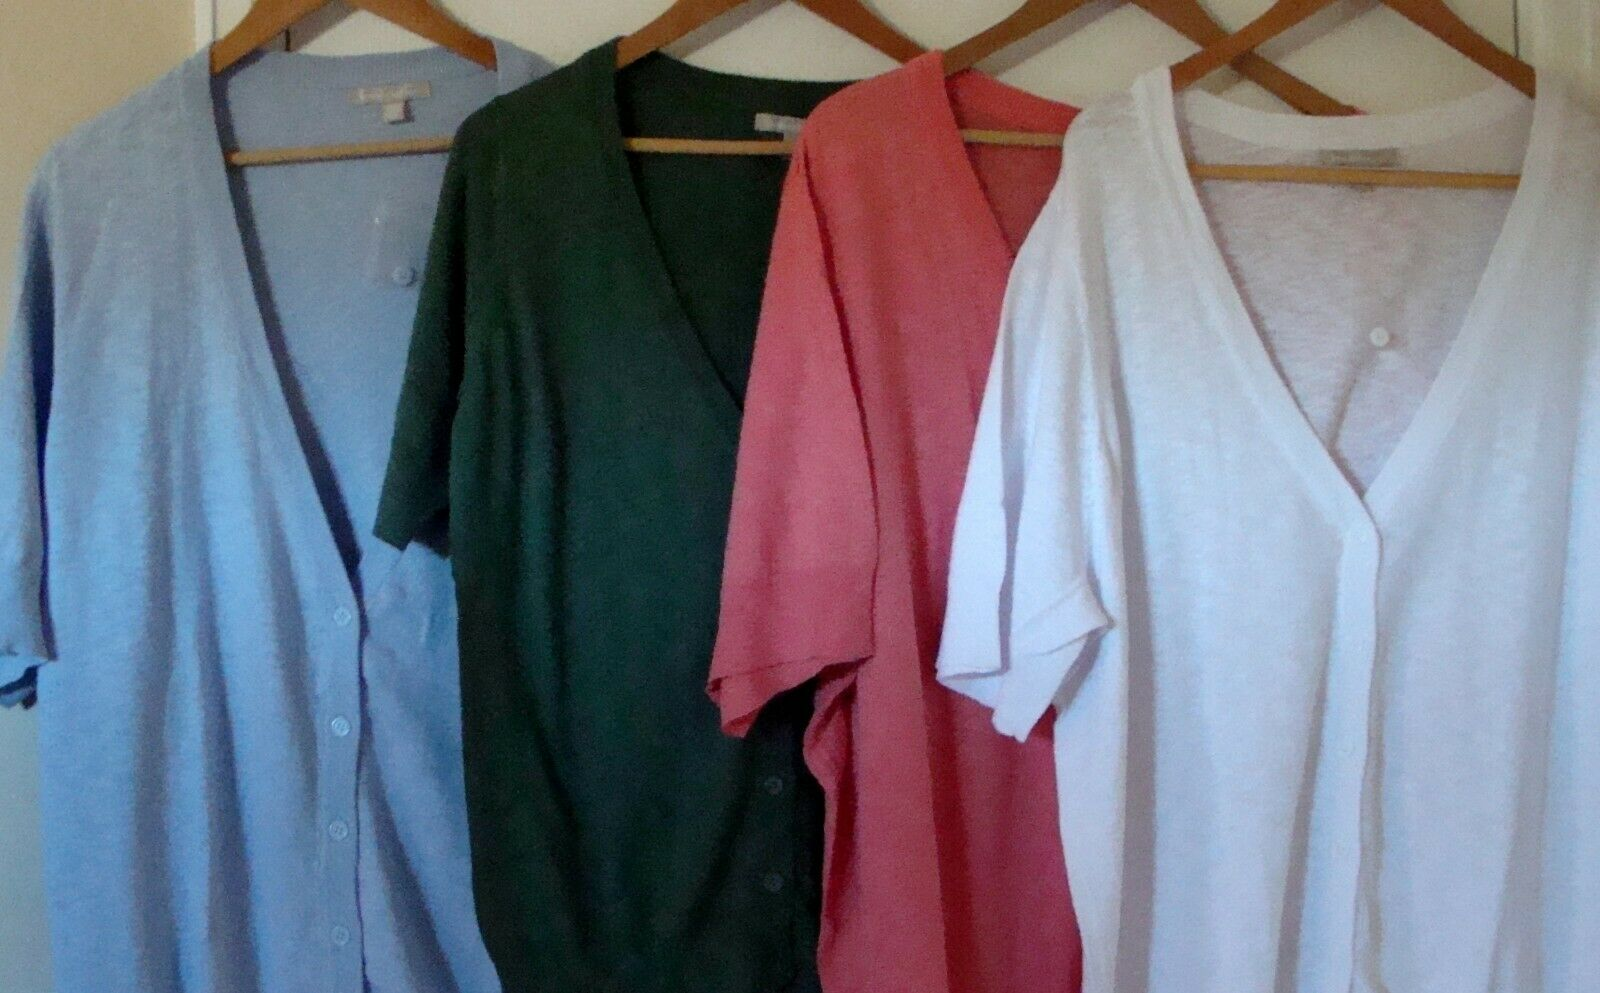 Woman Within Short Sleeve V-Neck Cardigan Blue, Pink, White, Green, Sm to 5X